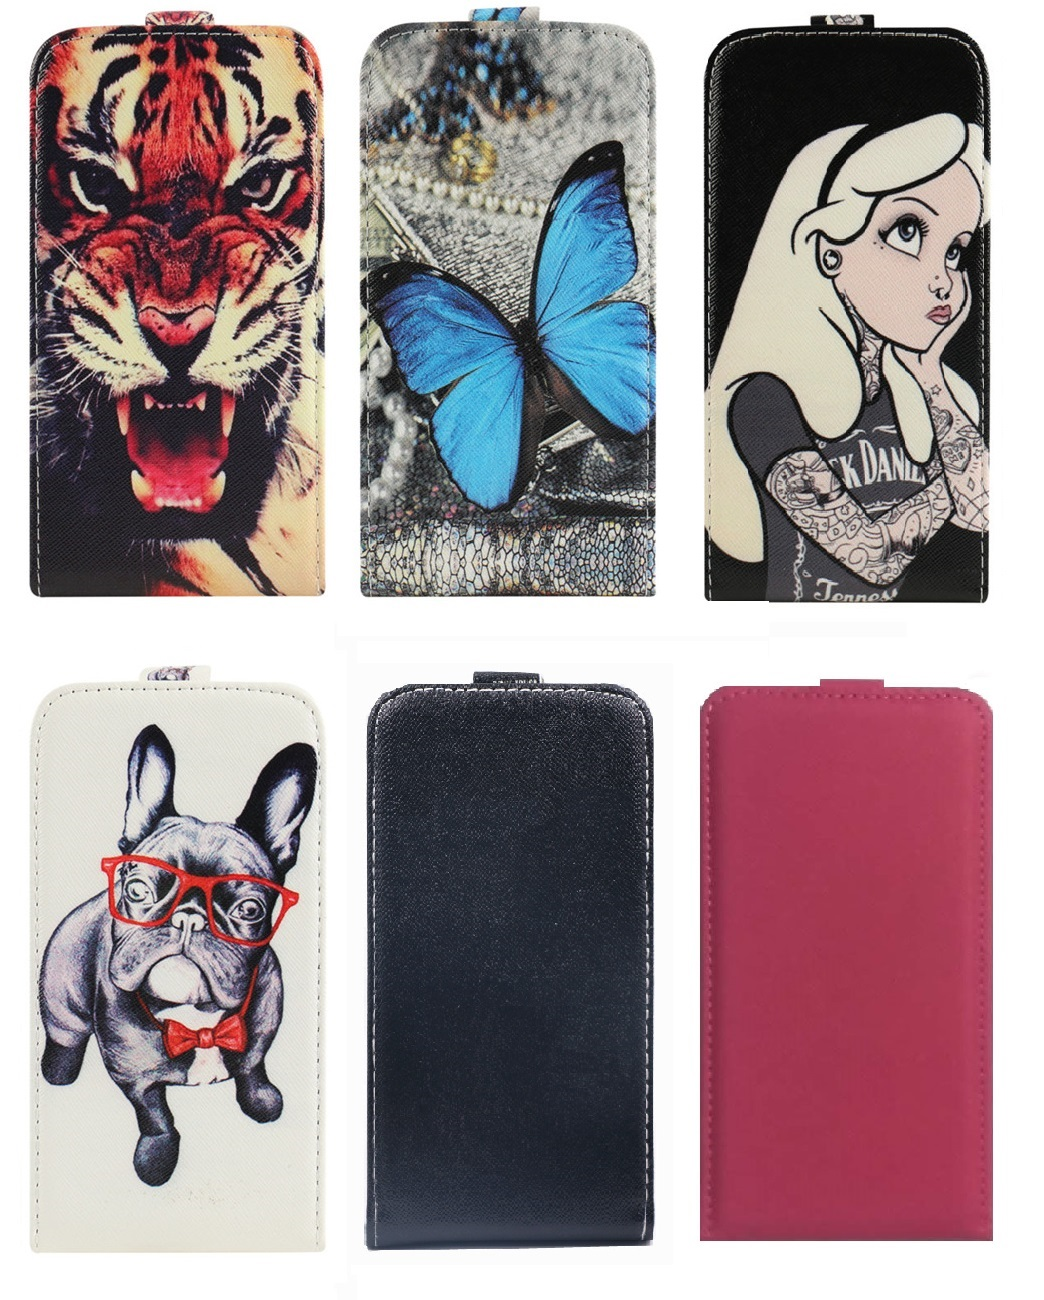 New Fashion Printed case cover For Philips S309 For Philips S307 For - Ανταλλακτικά και αξεσουάρ κινητών τηλεφώνων - Φωτογραφία 1